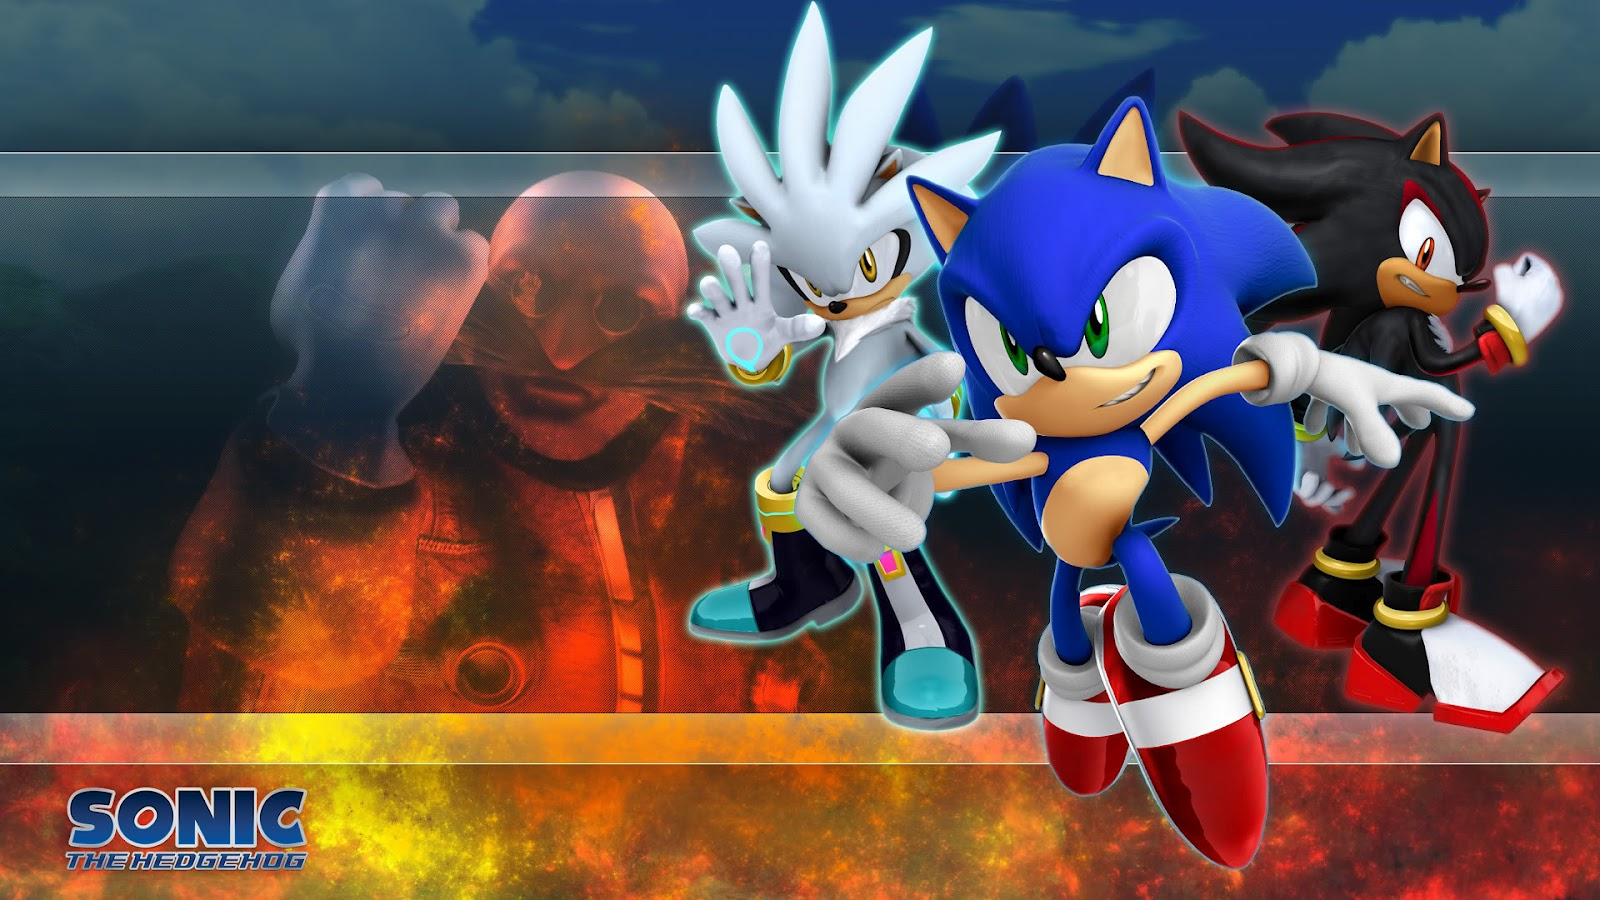 sonic the hedgehog wallpaper 2 sonic the hedgehog wallpaper 3 sonic 1600x900